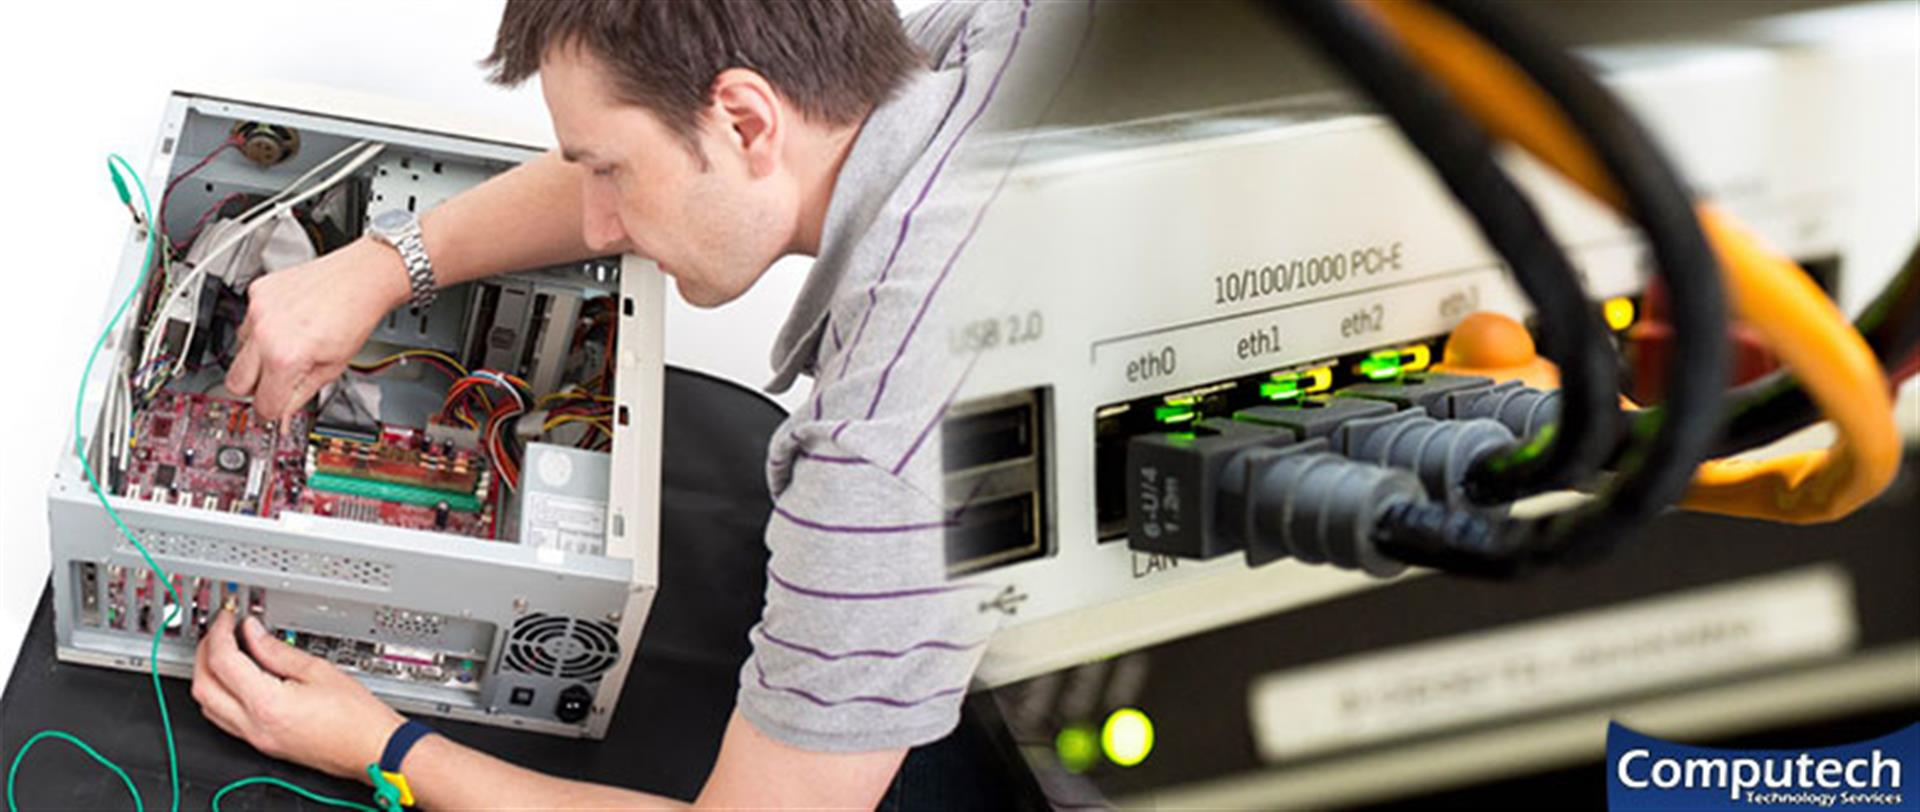 Jefferson Georgia On Site Computer PC & Printer Repair, Networking, Voice & Data Cabling Contractors